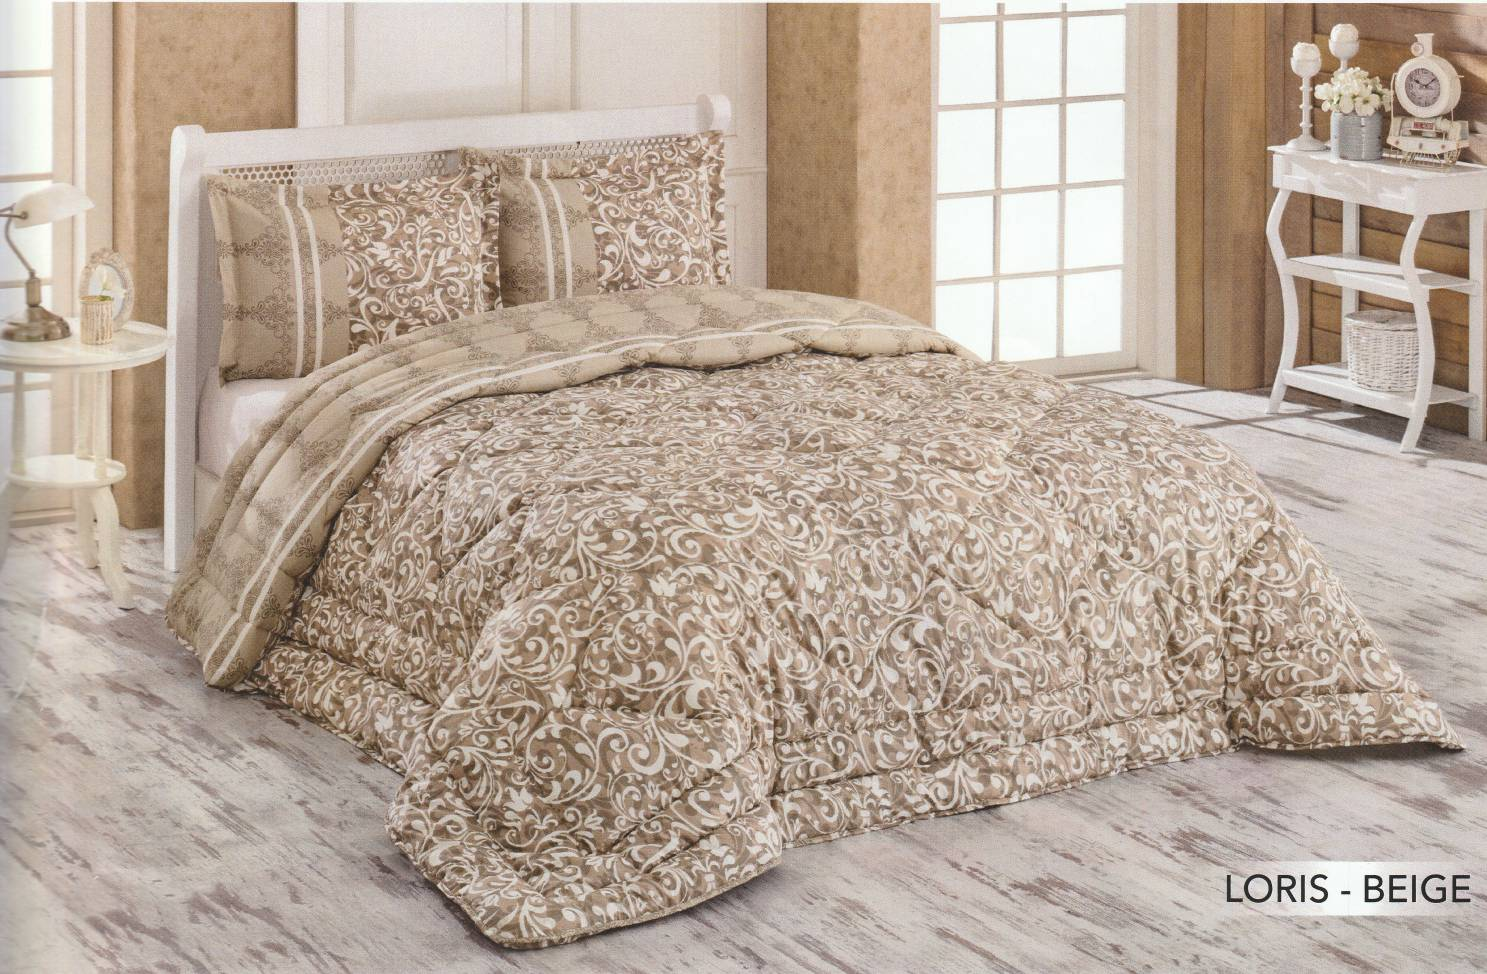 Couette Cotton Doux 2 Places LORIS BEIGE 240x260